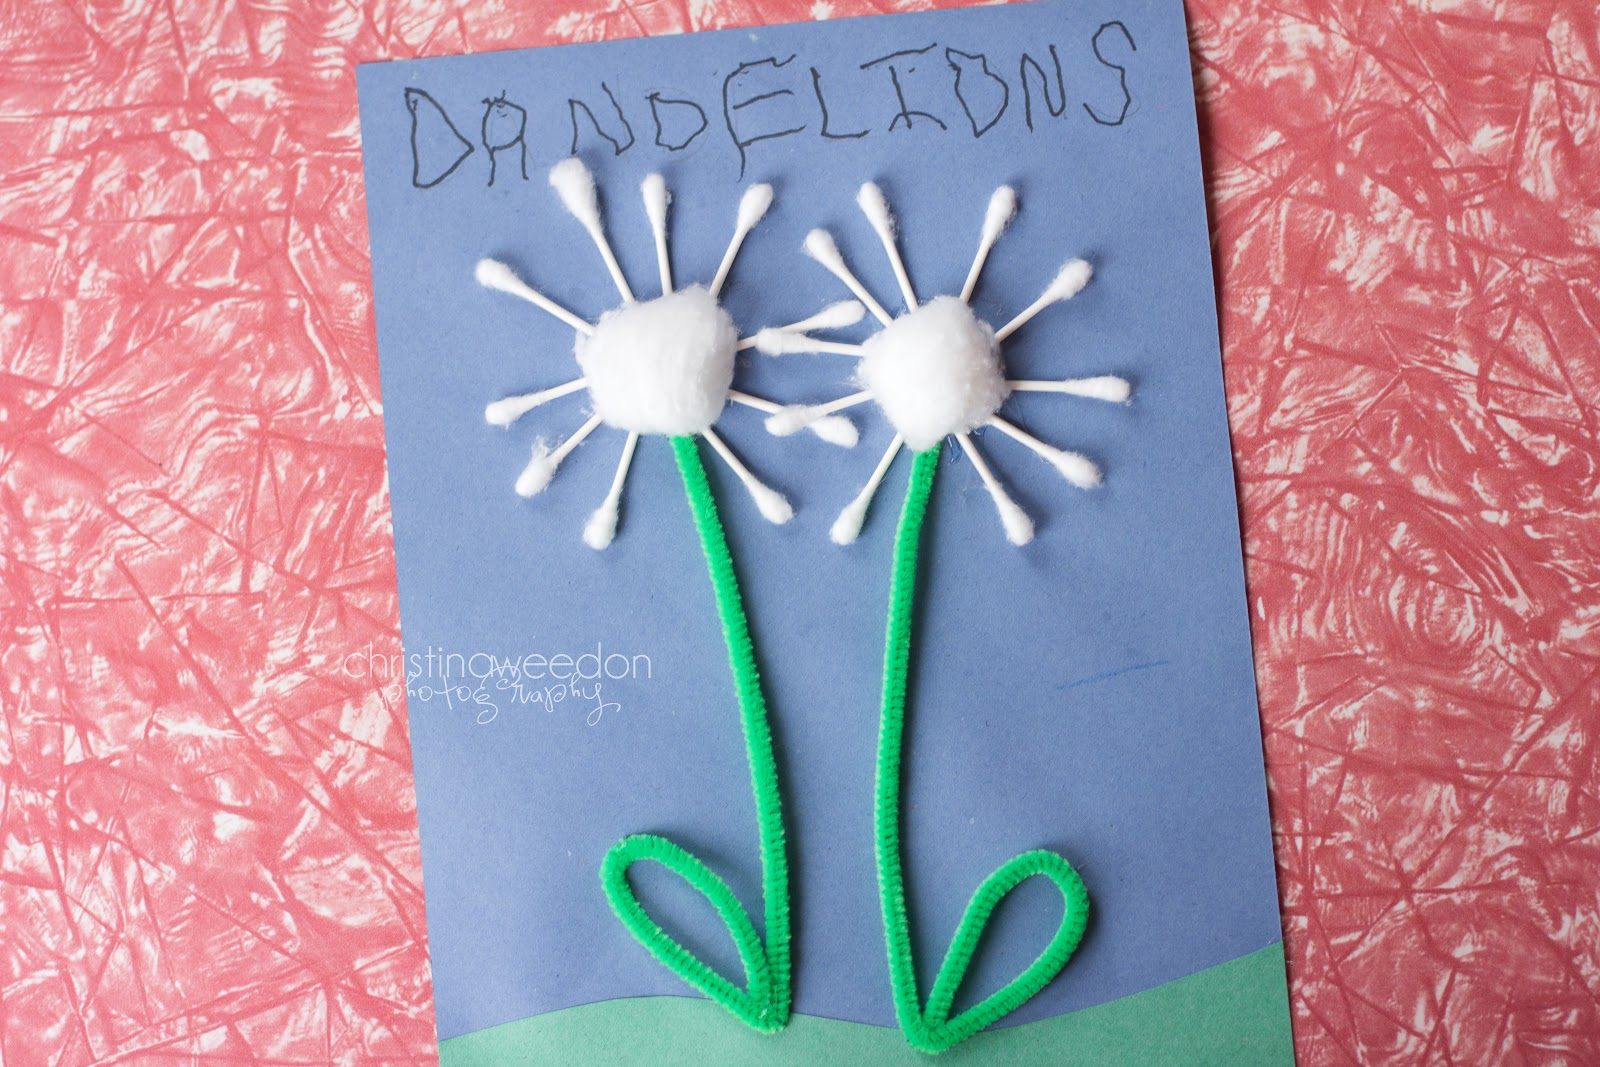 Dandelions on the Wall Homeschool The Letter D crafts